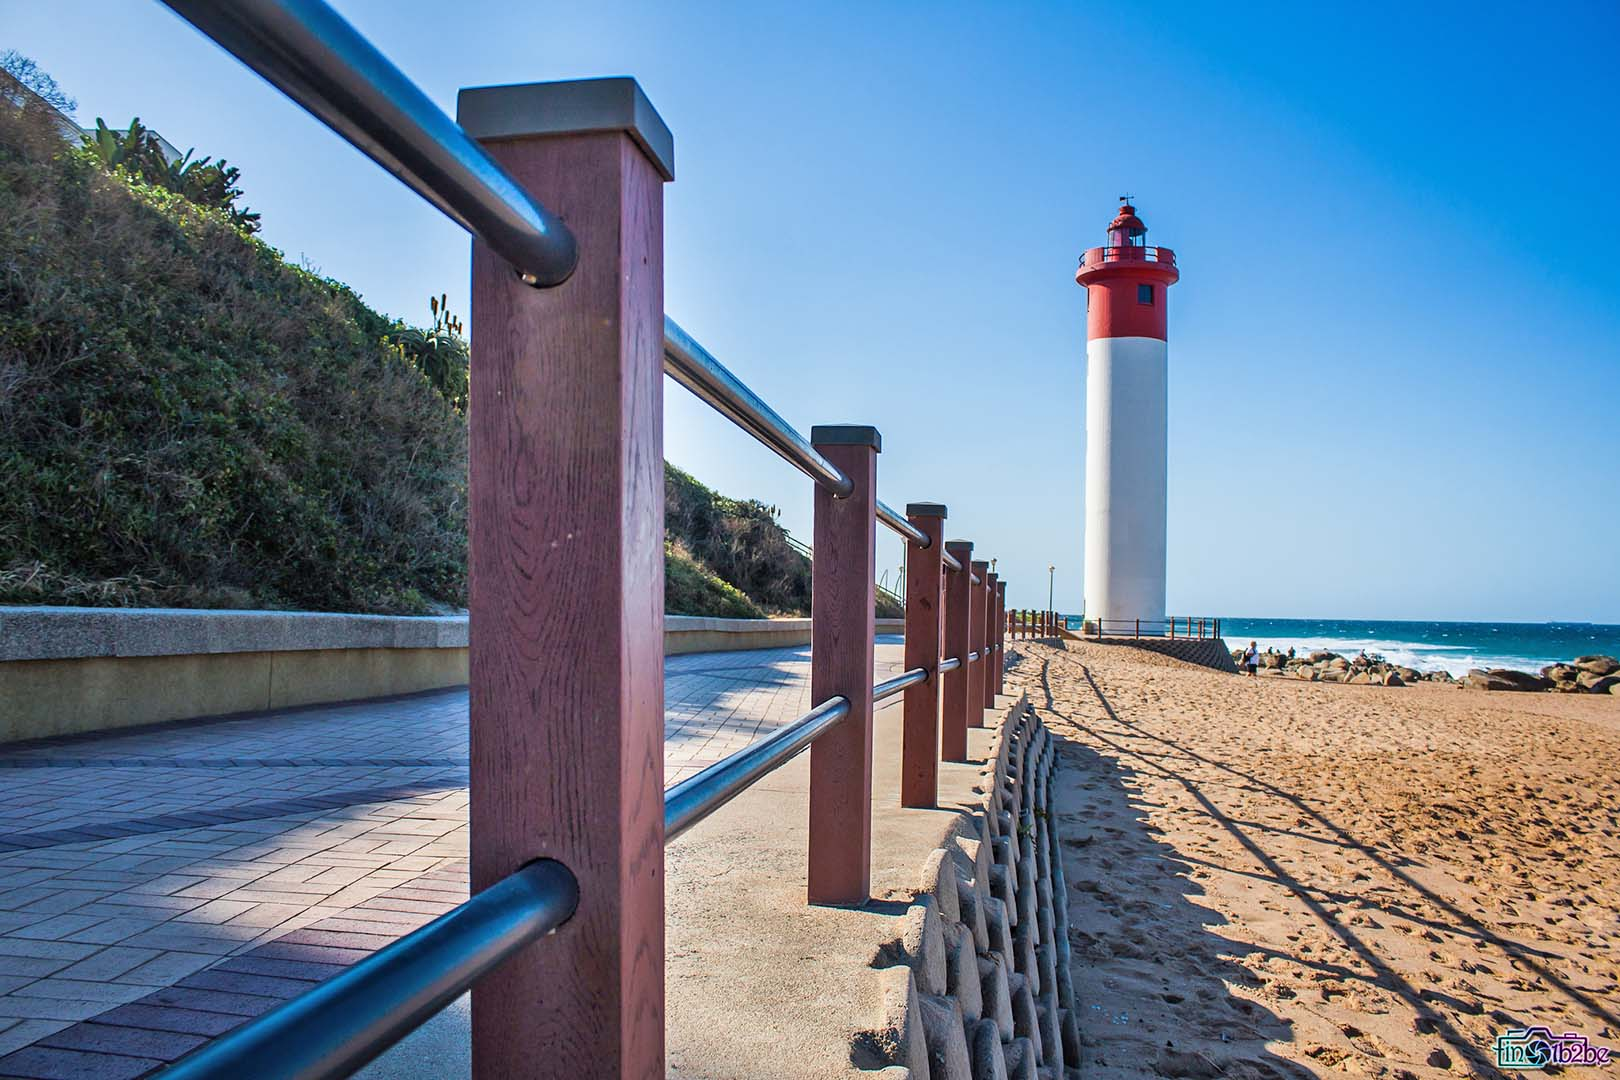 Image of Umhlanga Lighthouse, Durban, South Africa - Tinotenda Chemvura